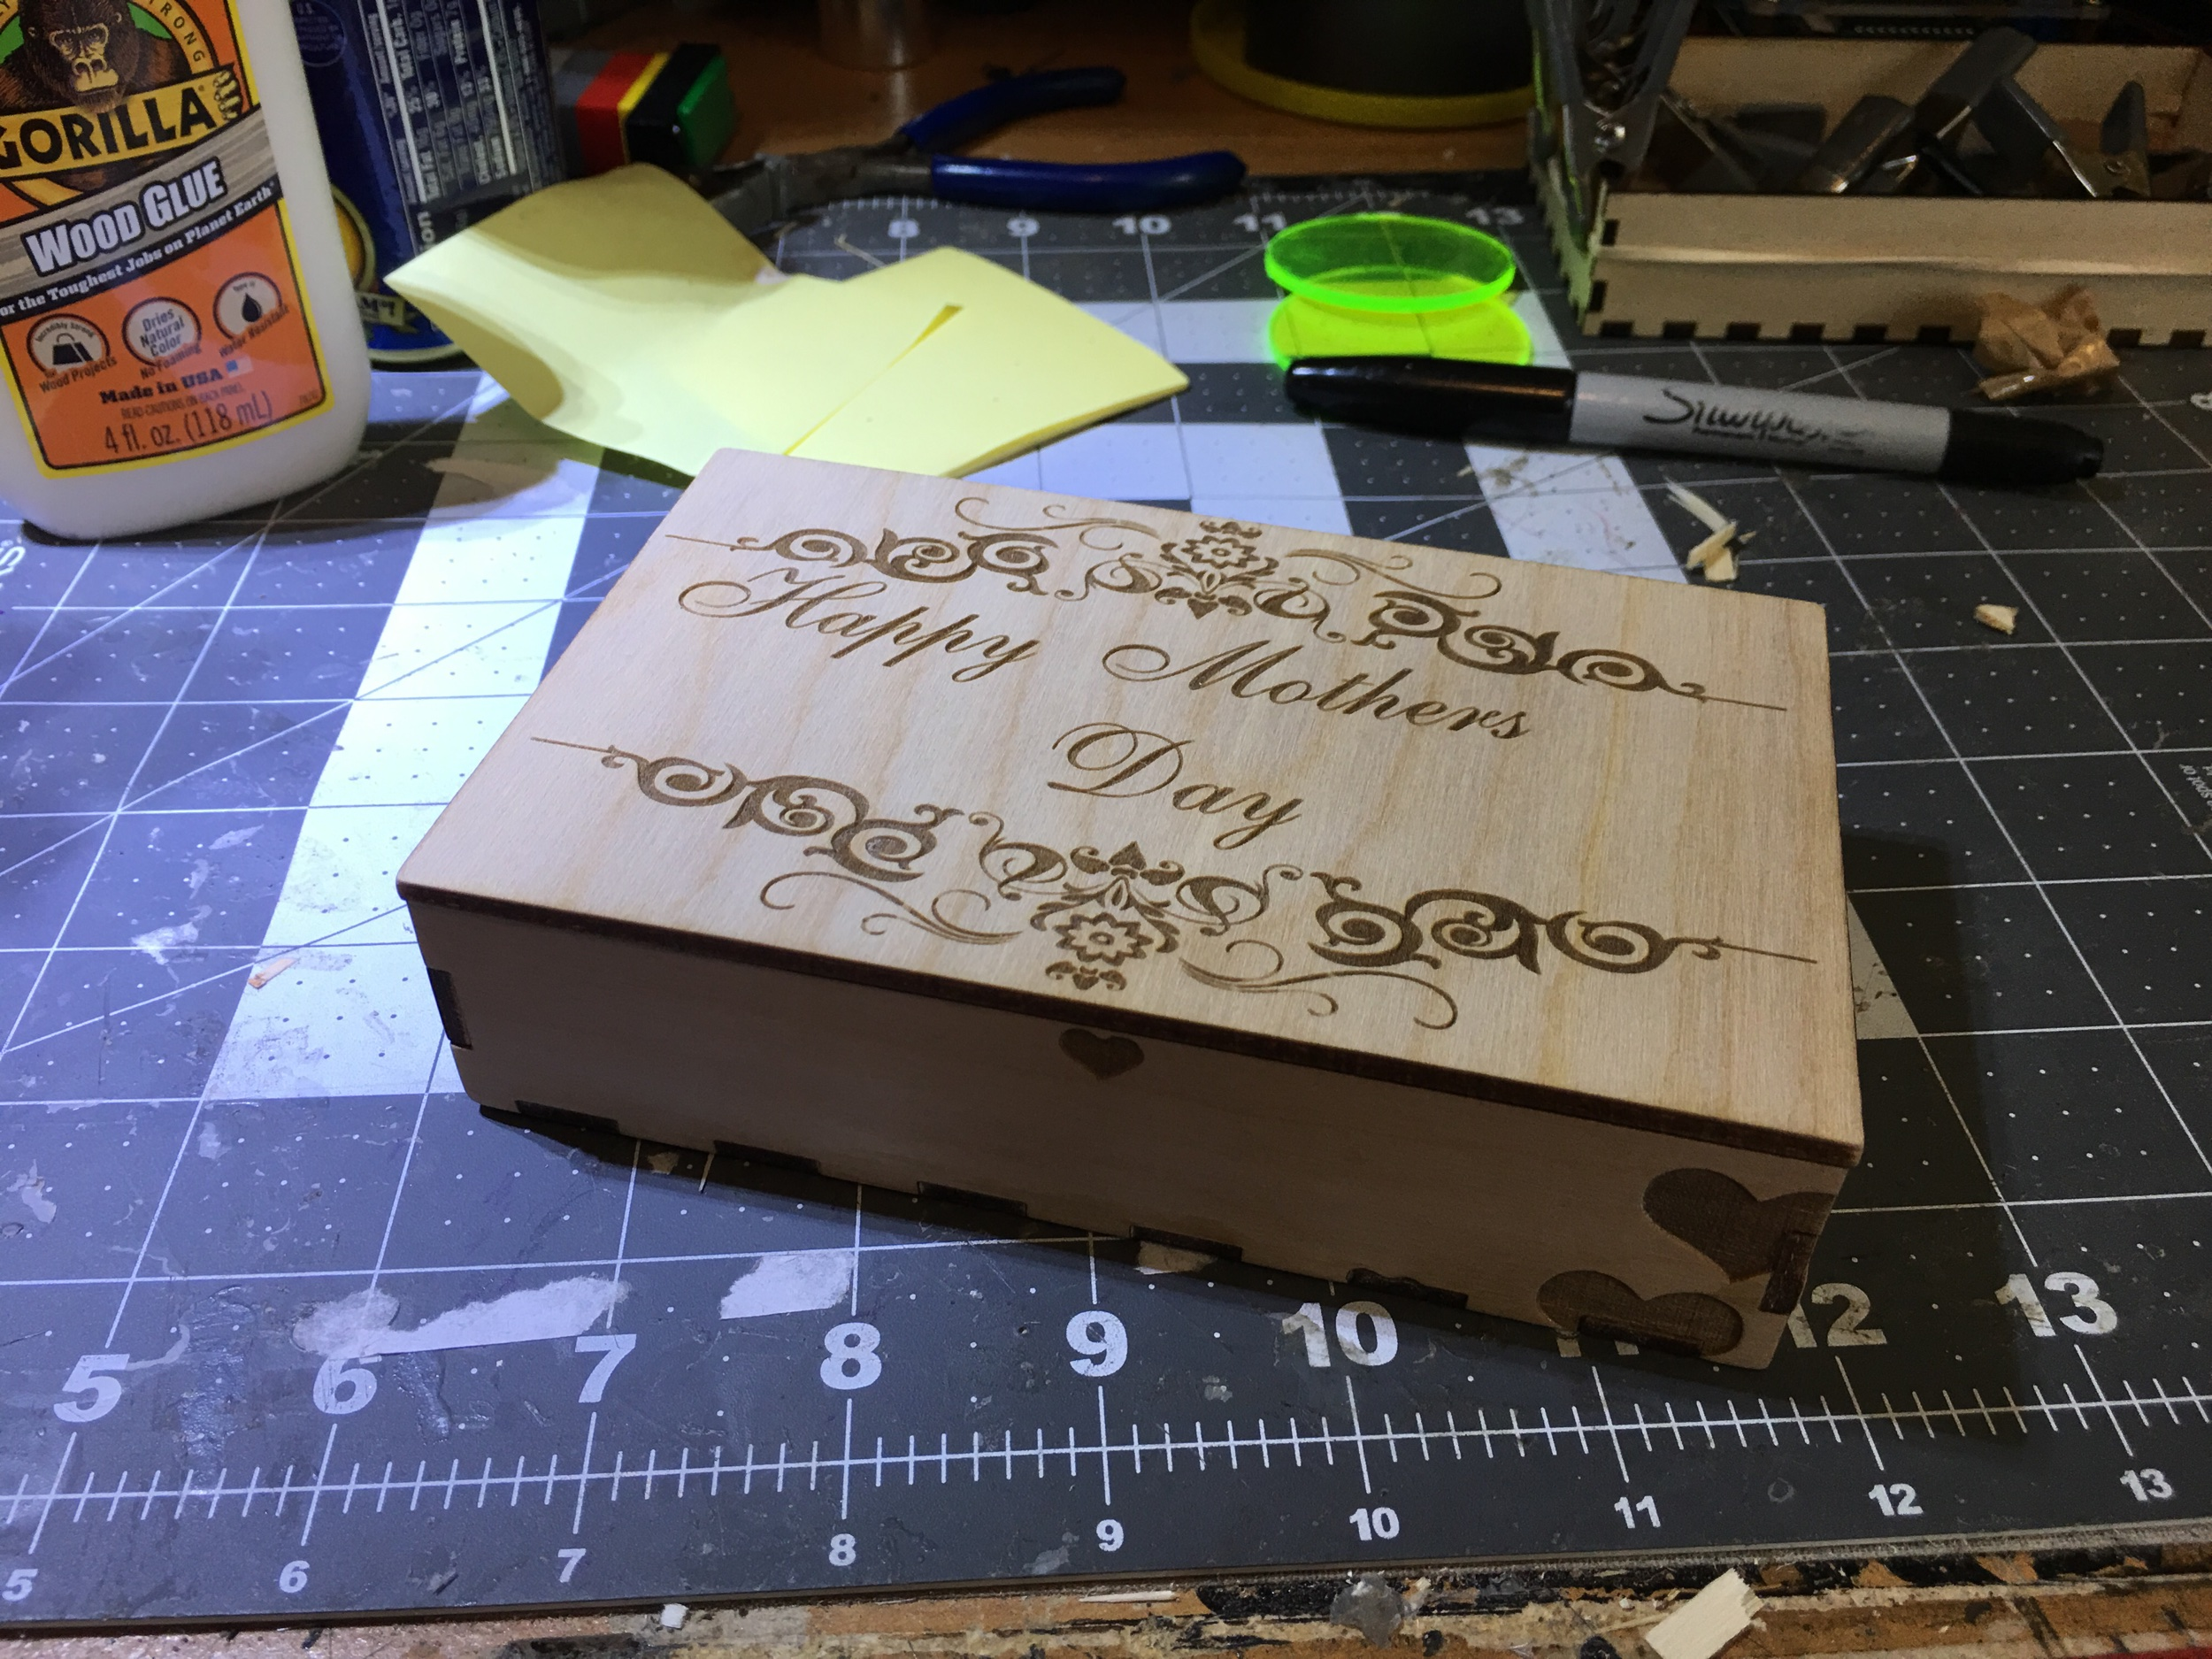 """Mother's Day, or any day you want to celebrate with a hand made presentation box. Add any images or text you like, both inside and out! Measures 1.2"""" high, by 3.5x5.75."""